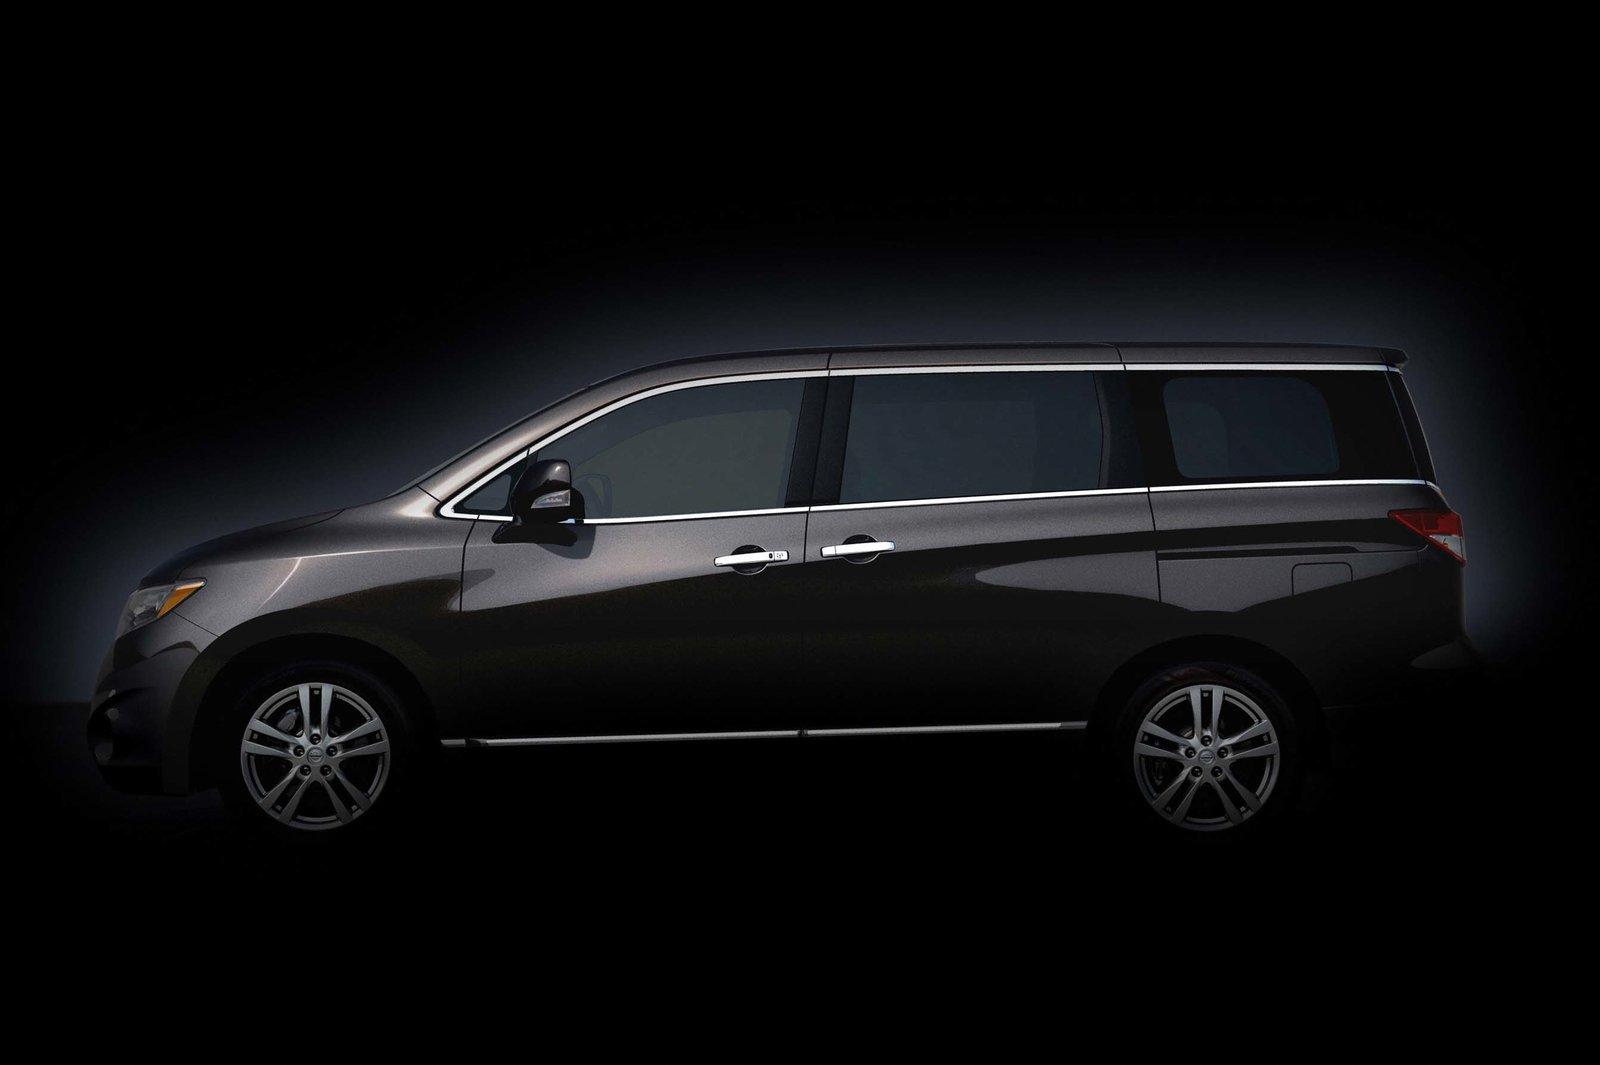 2012 Nissan Quest 1 2012 Nissan Quest Version – An Overview